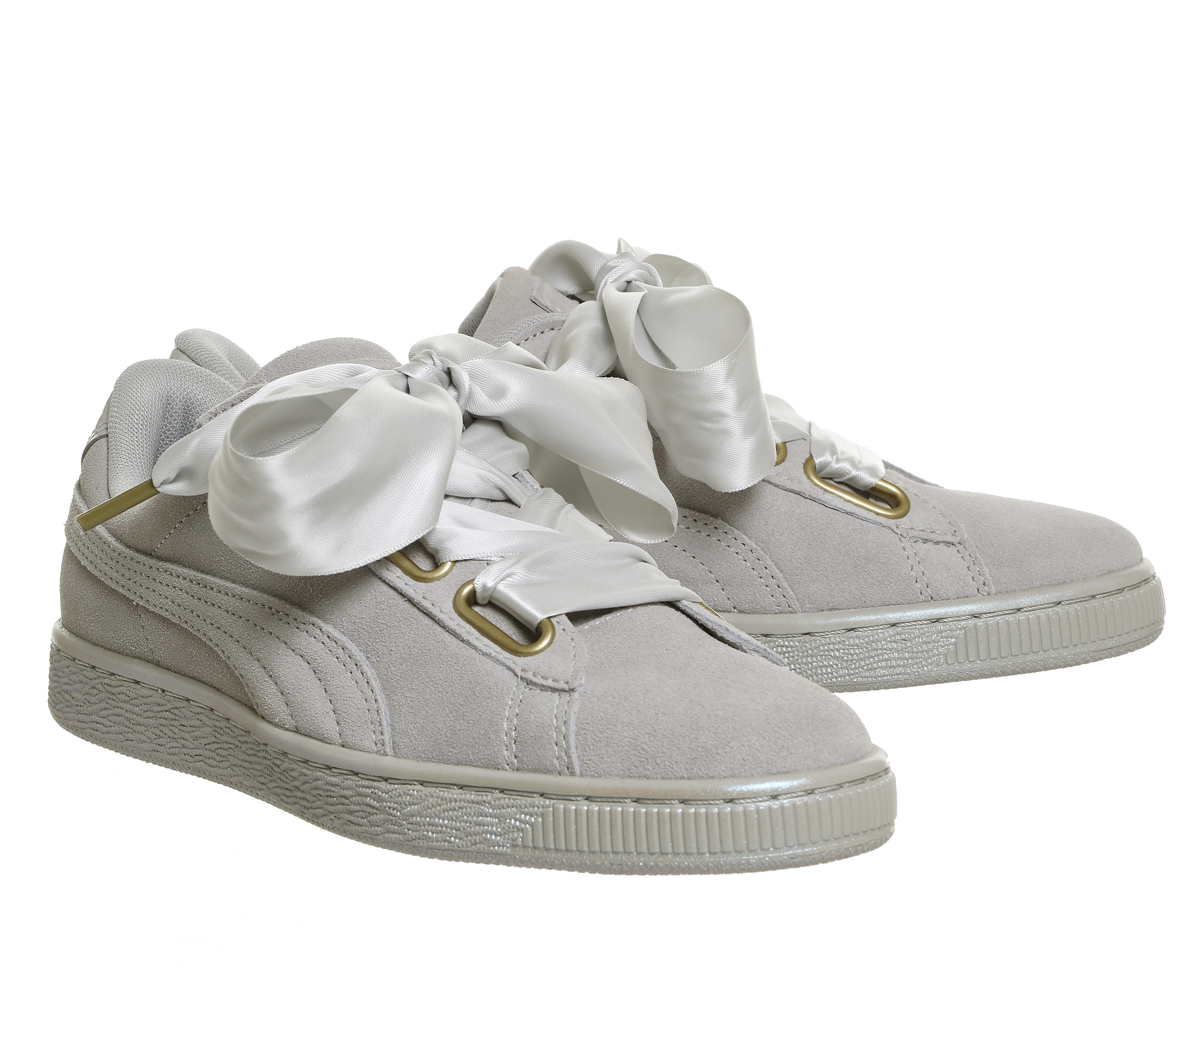 2f8946aeada37c Sentinel Womens Puma Suede Heart Grey Violet Satin Trainers Shoes